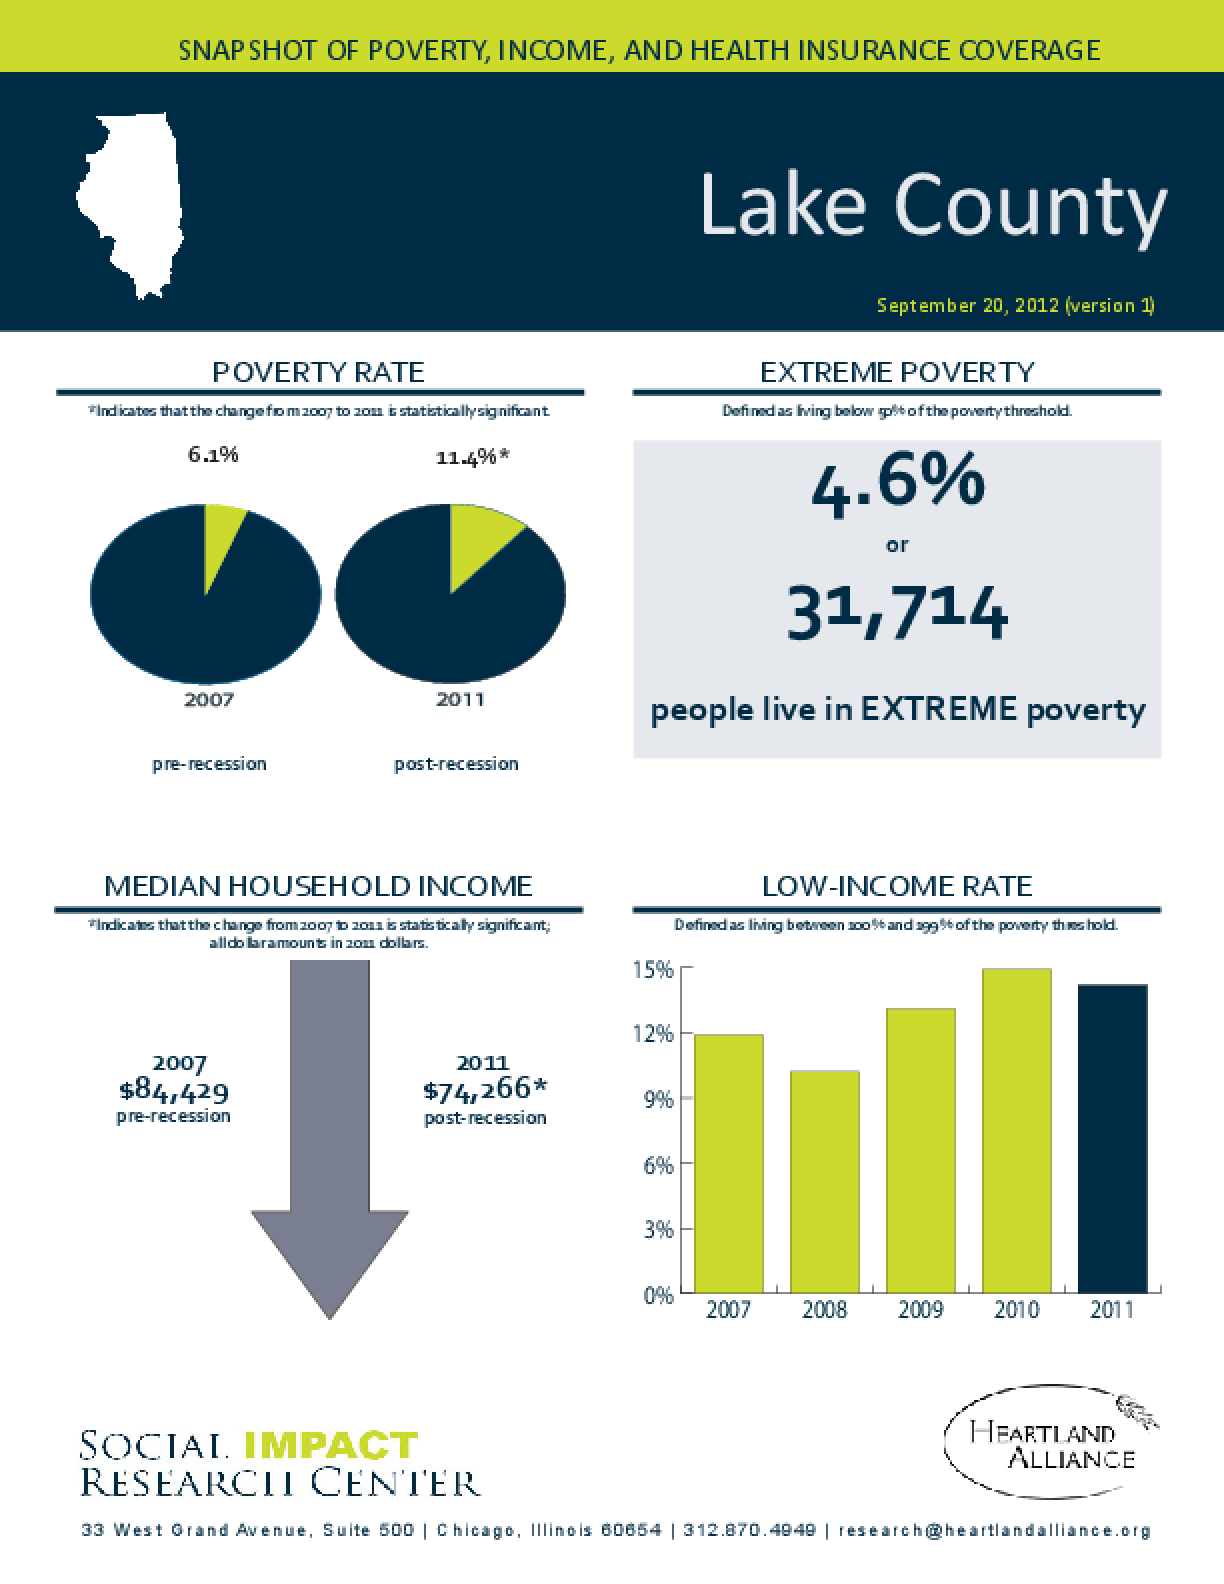 Lake County: Snapshot of Poverty, Income, and Health Insurance Coverage - 2011